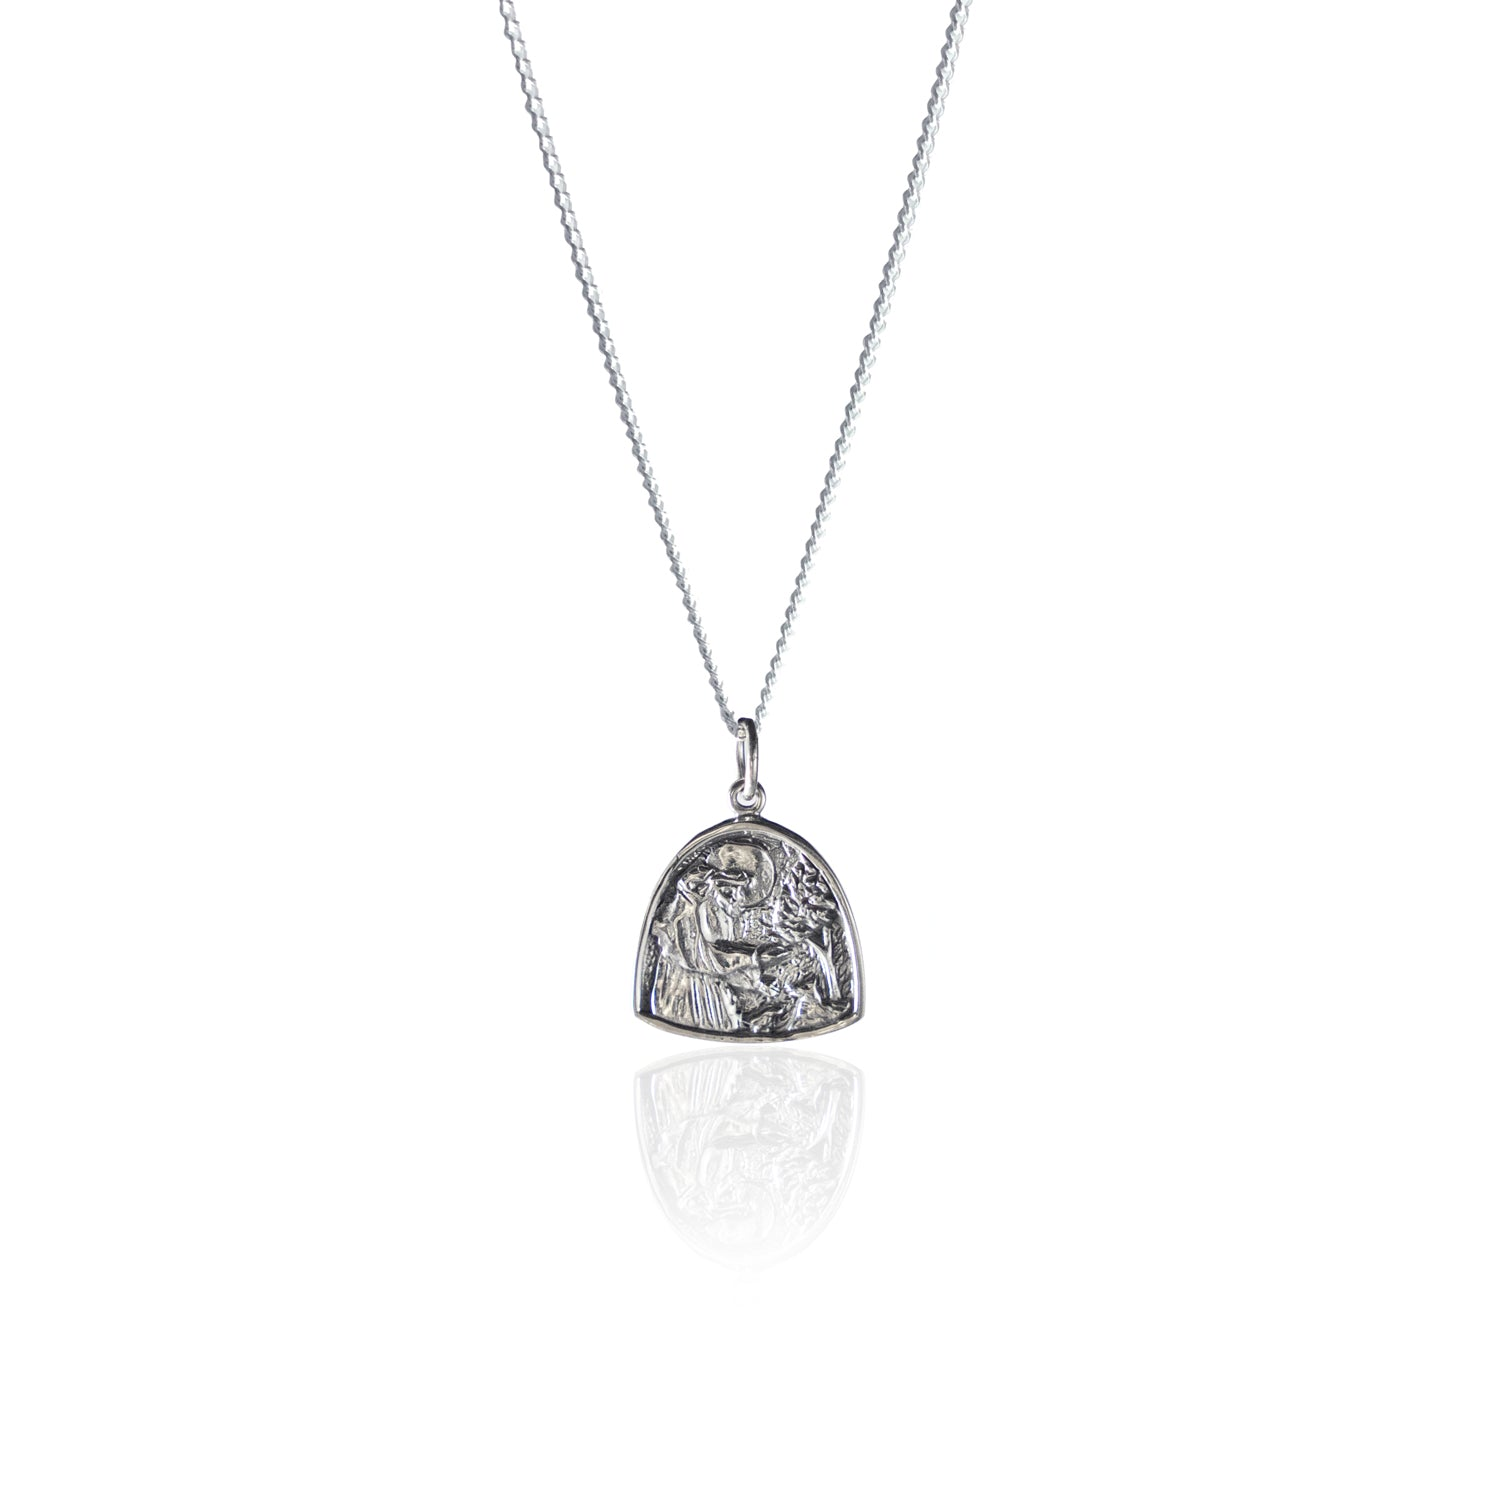 21b0804739438 Gold St Assisi necklace - Luna & Rose sustainable Jewelry - La Luna ...